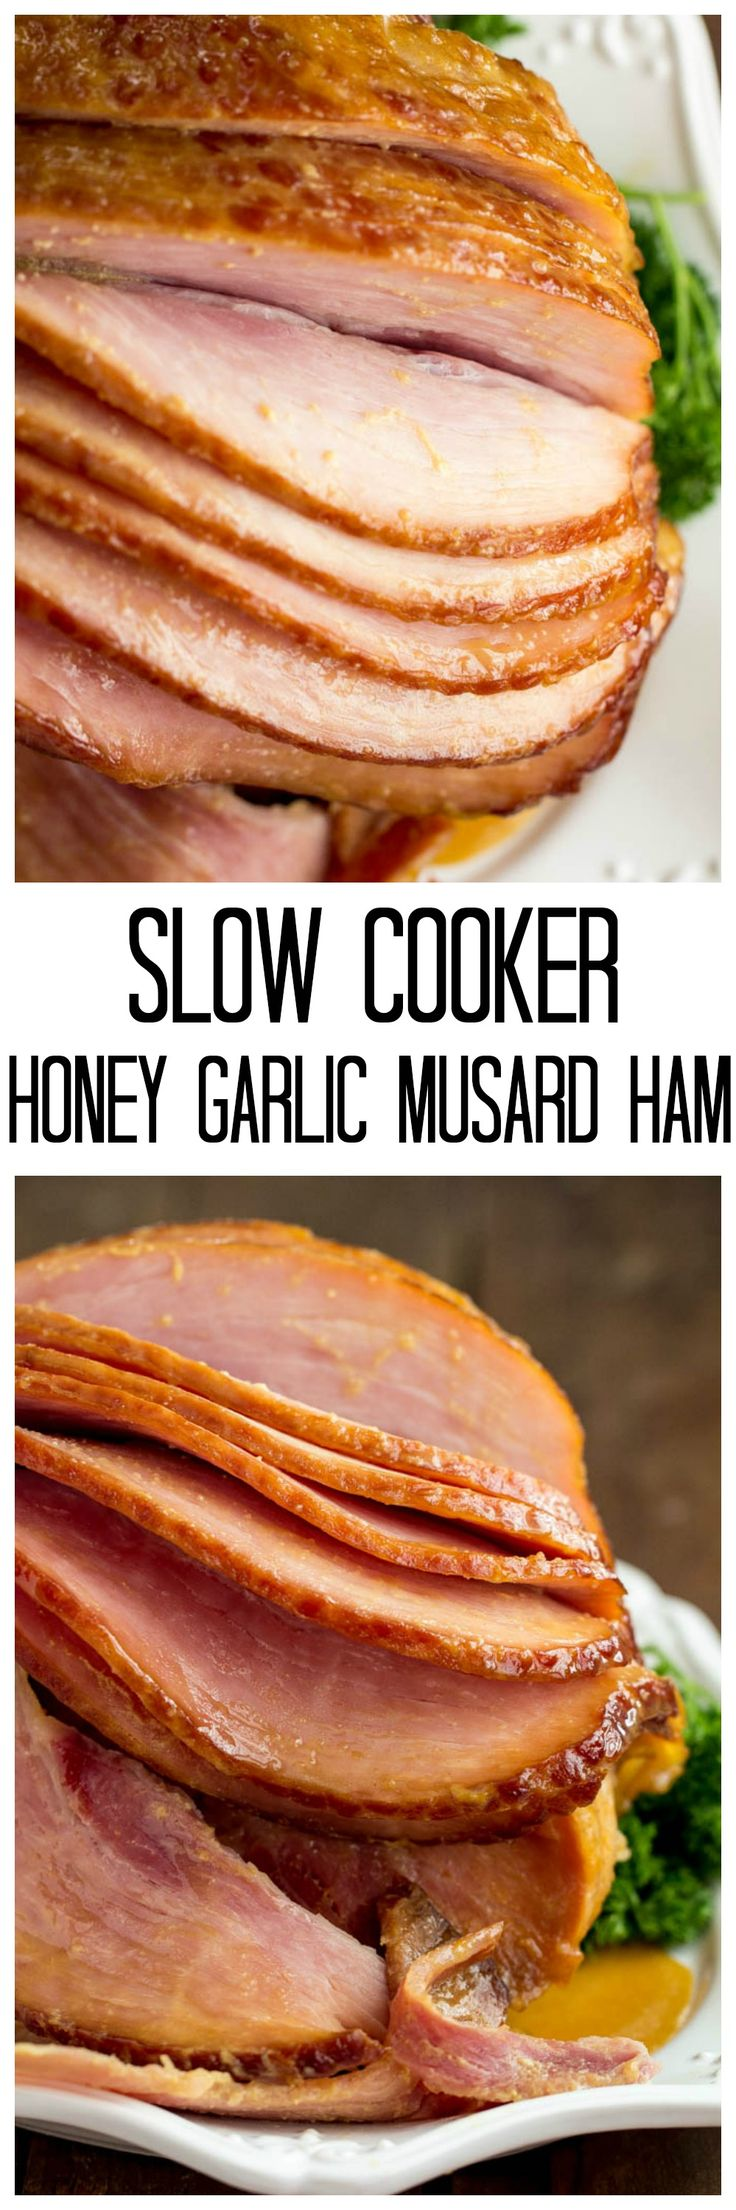 Slow Cooker Honey Garlic Mustard Glazed Ham has he most amazing flavor and is made right in your slow cooker!!